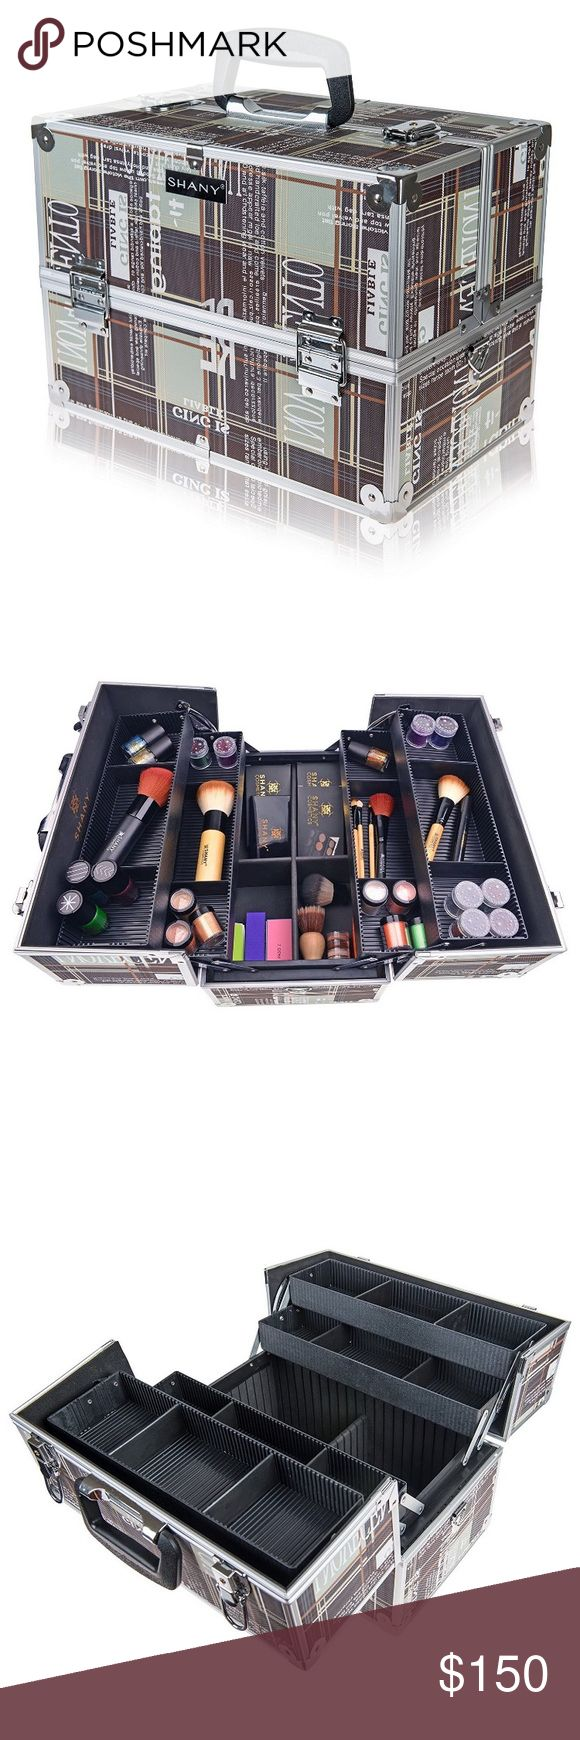 Essential Pro Makeup Train Case Essential Pro Makeup Train Case with Shoulder Strap and Locks - BROWN Makeup